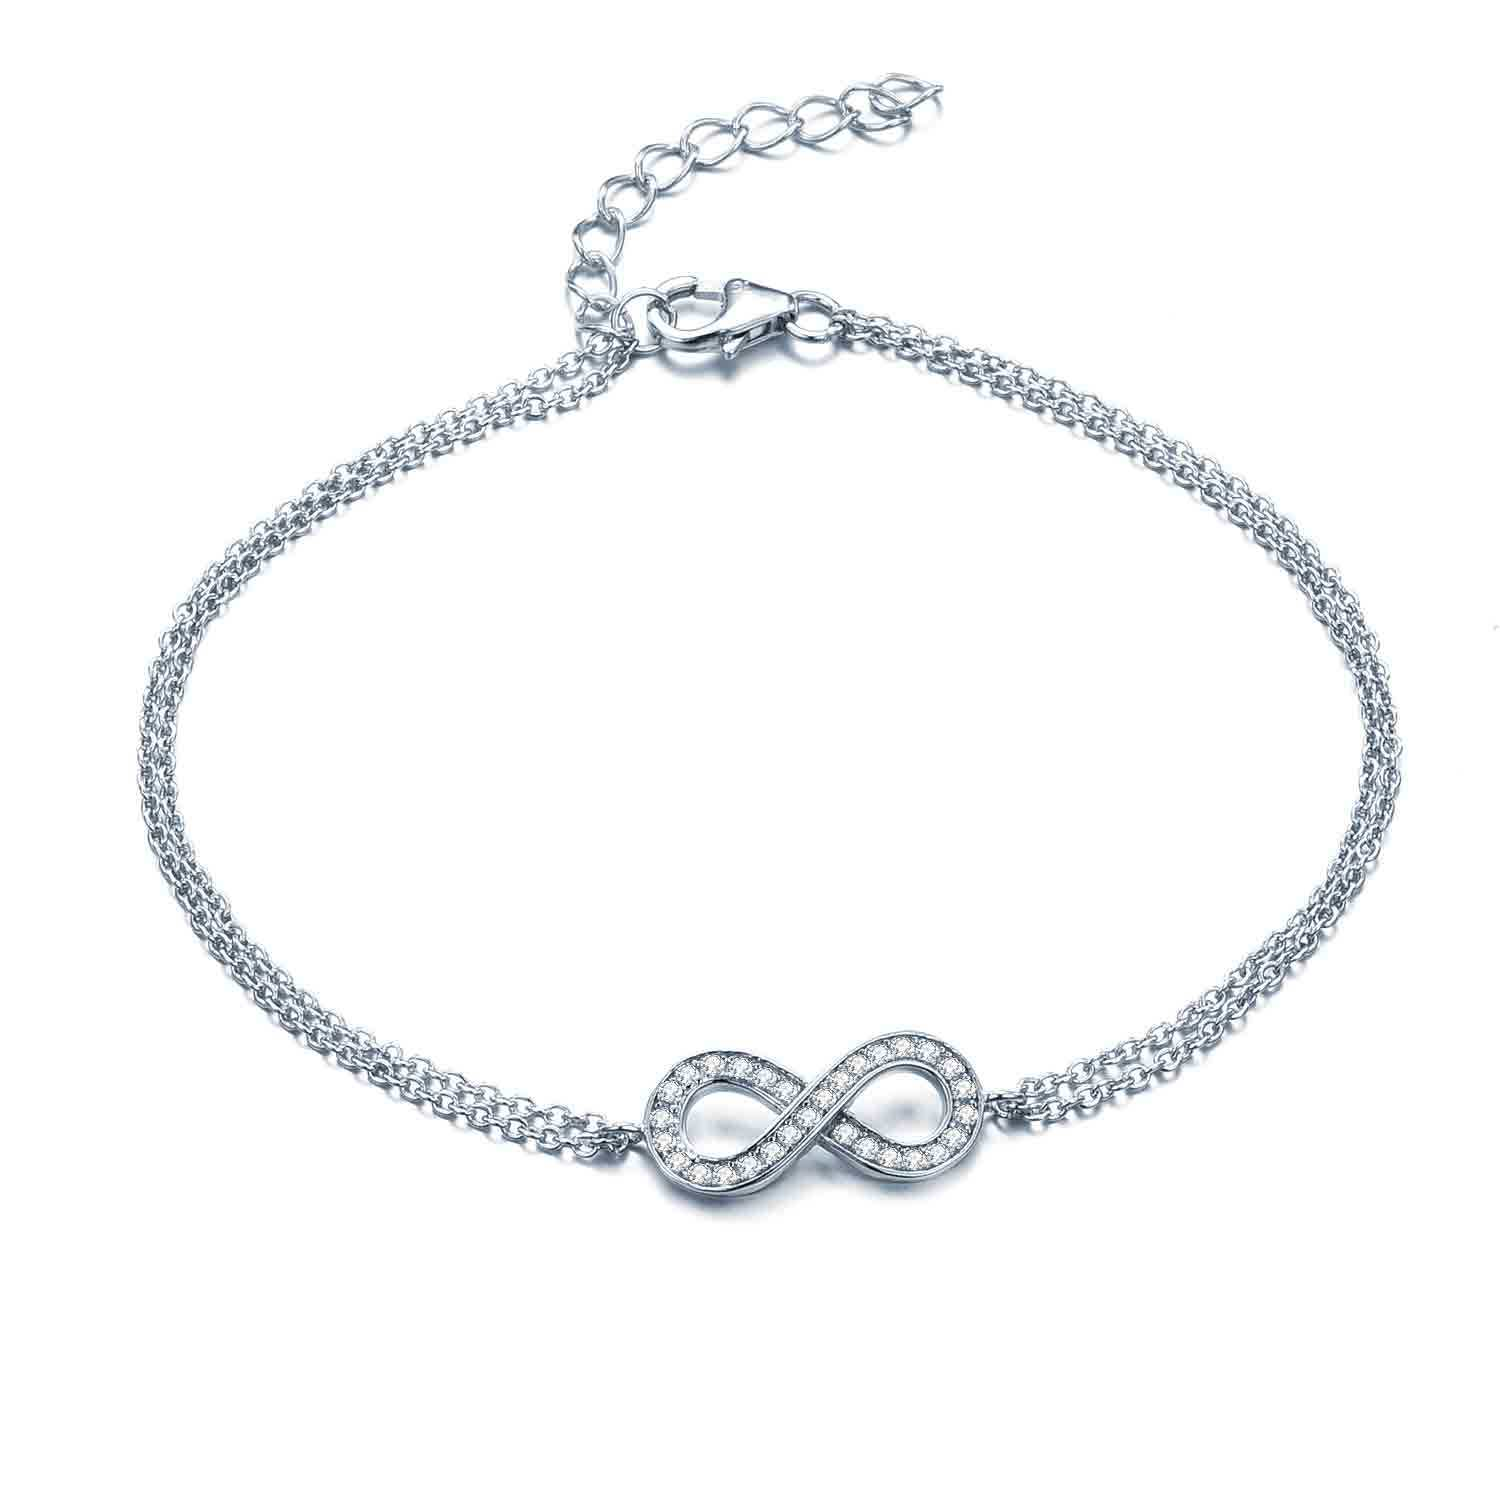 925 Silver Infinity Bracelet/Anklet with Box Chain